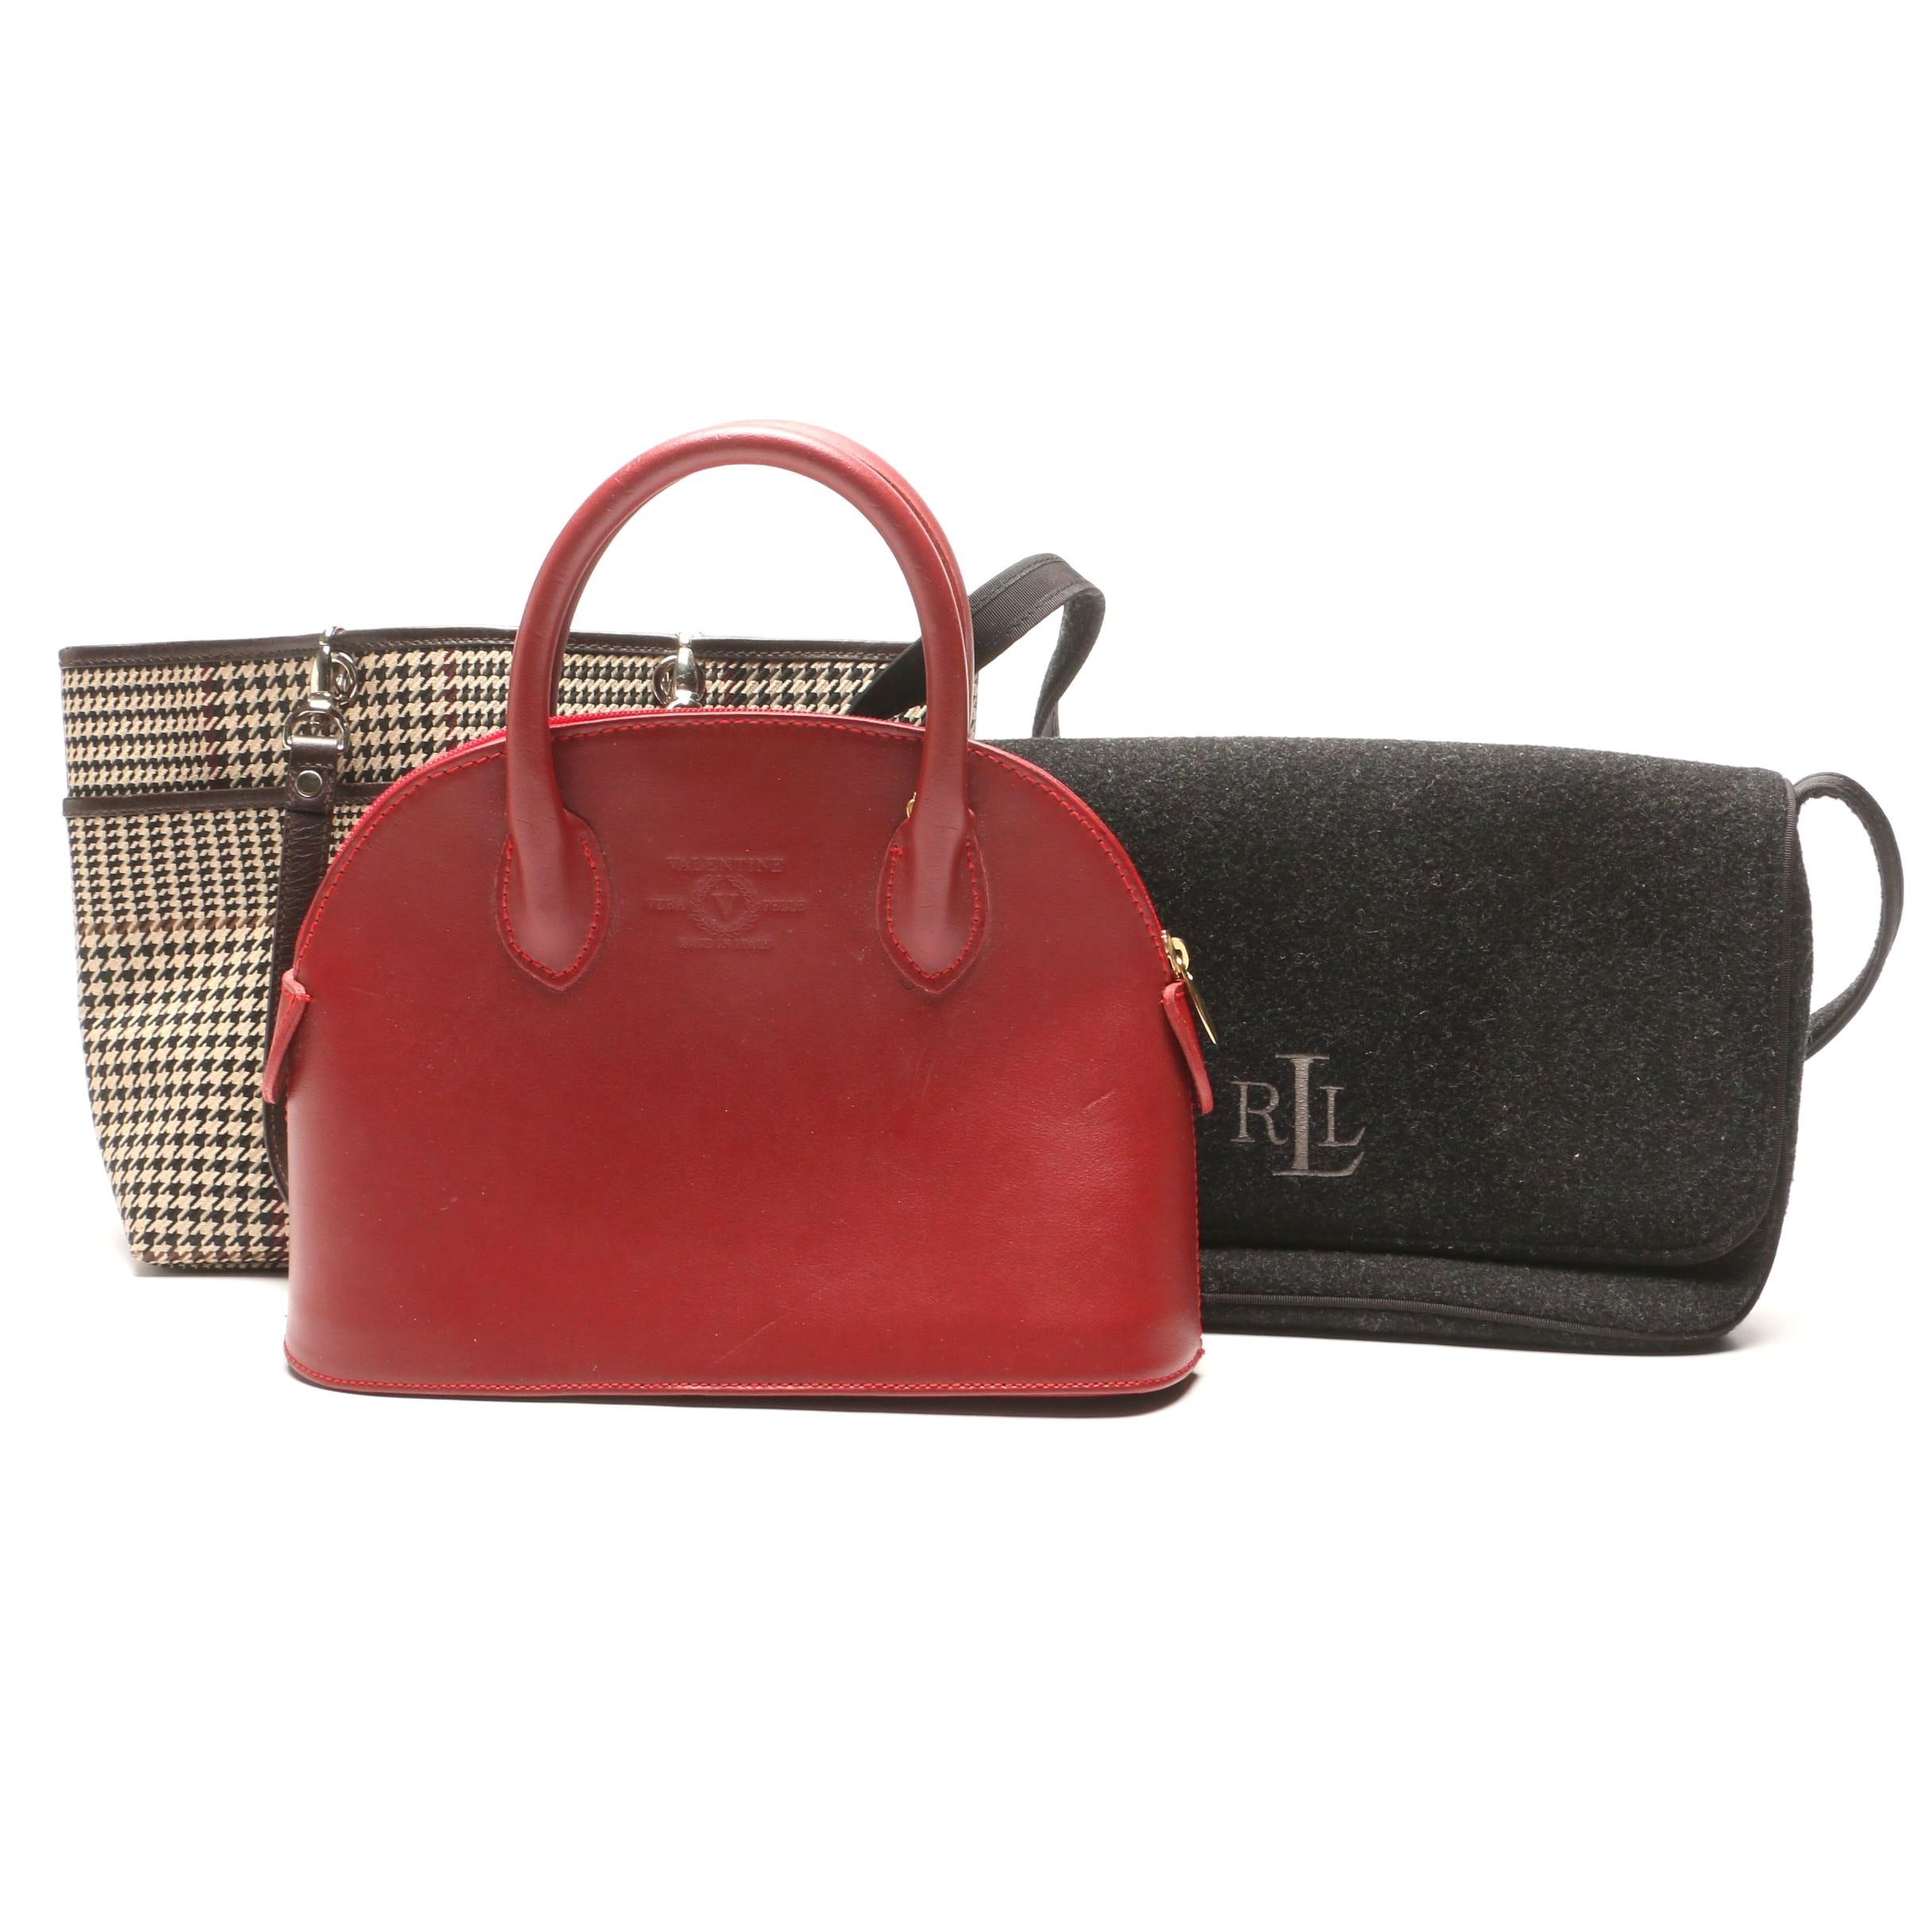 Lauren Ralph Lauren and Valentine Handbags